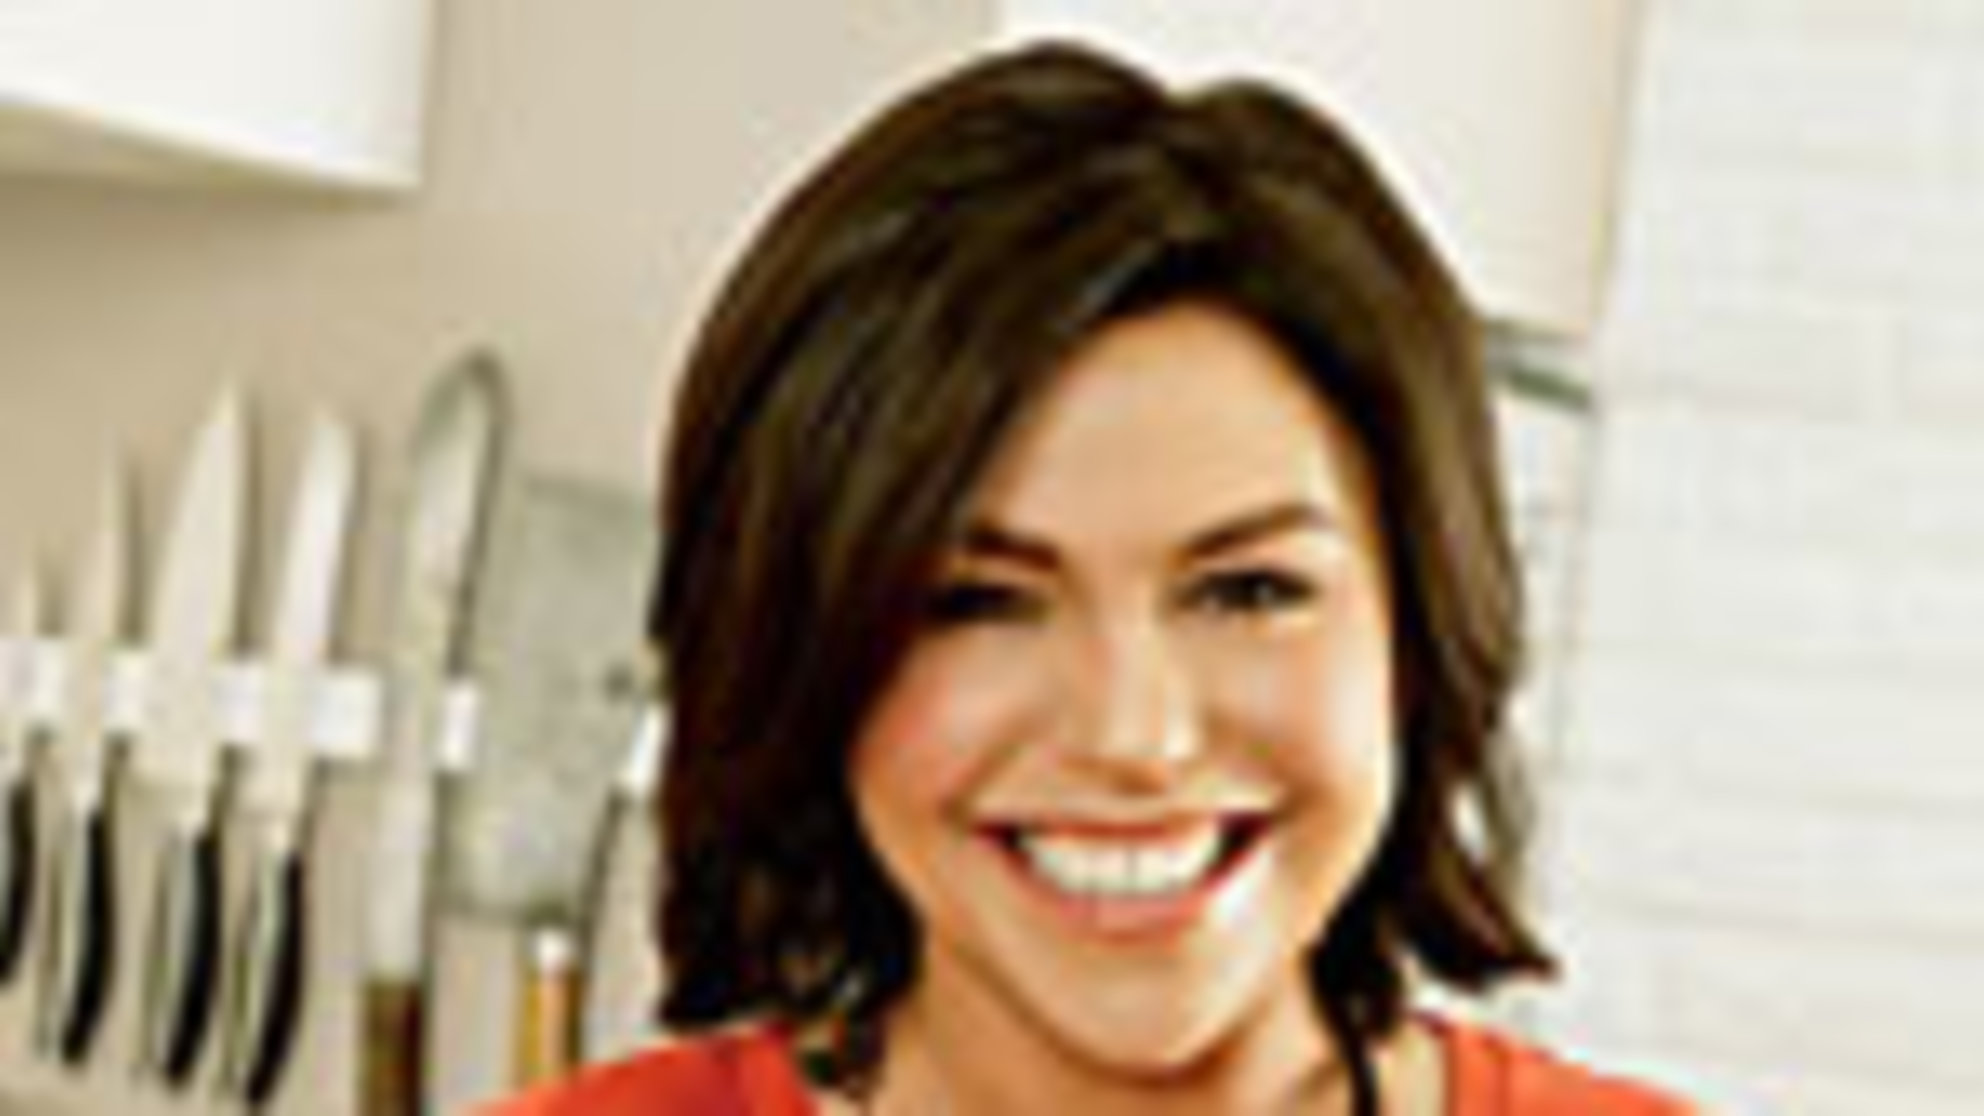 6 Questions for Rachael Ray: On Dieting, Cooking, and Turning 40